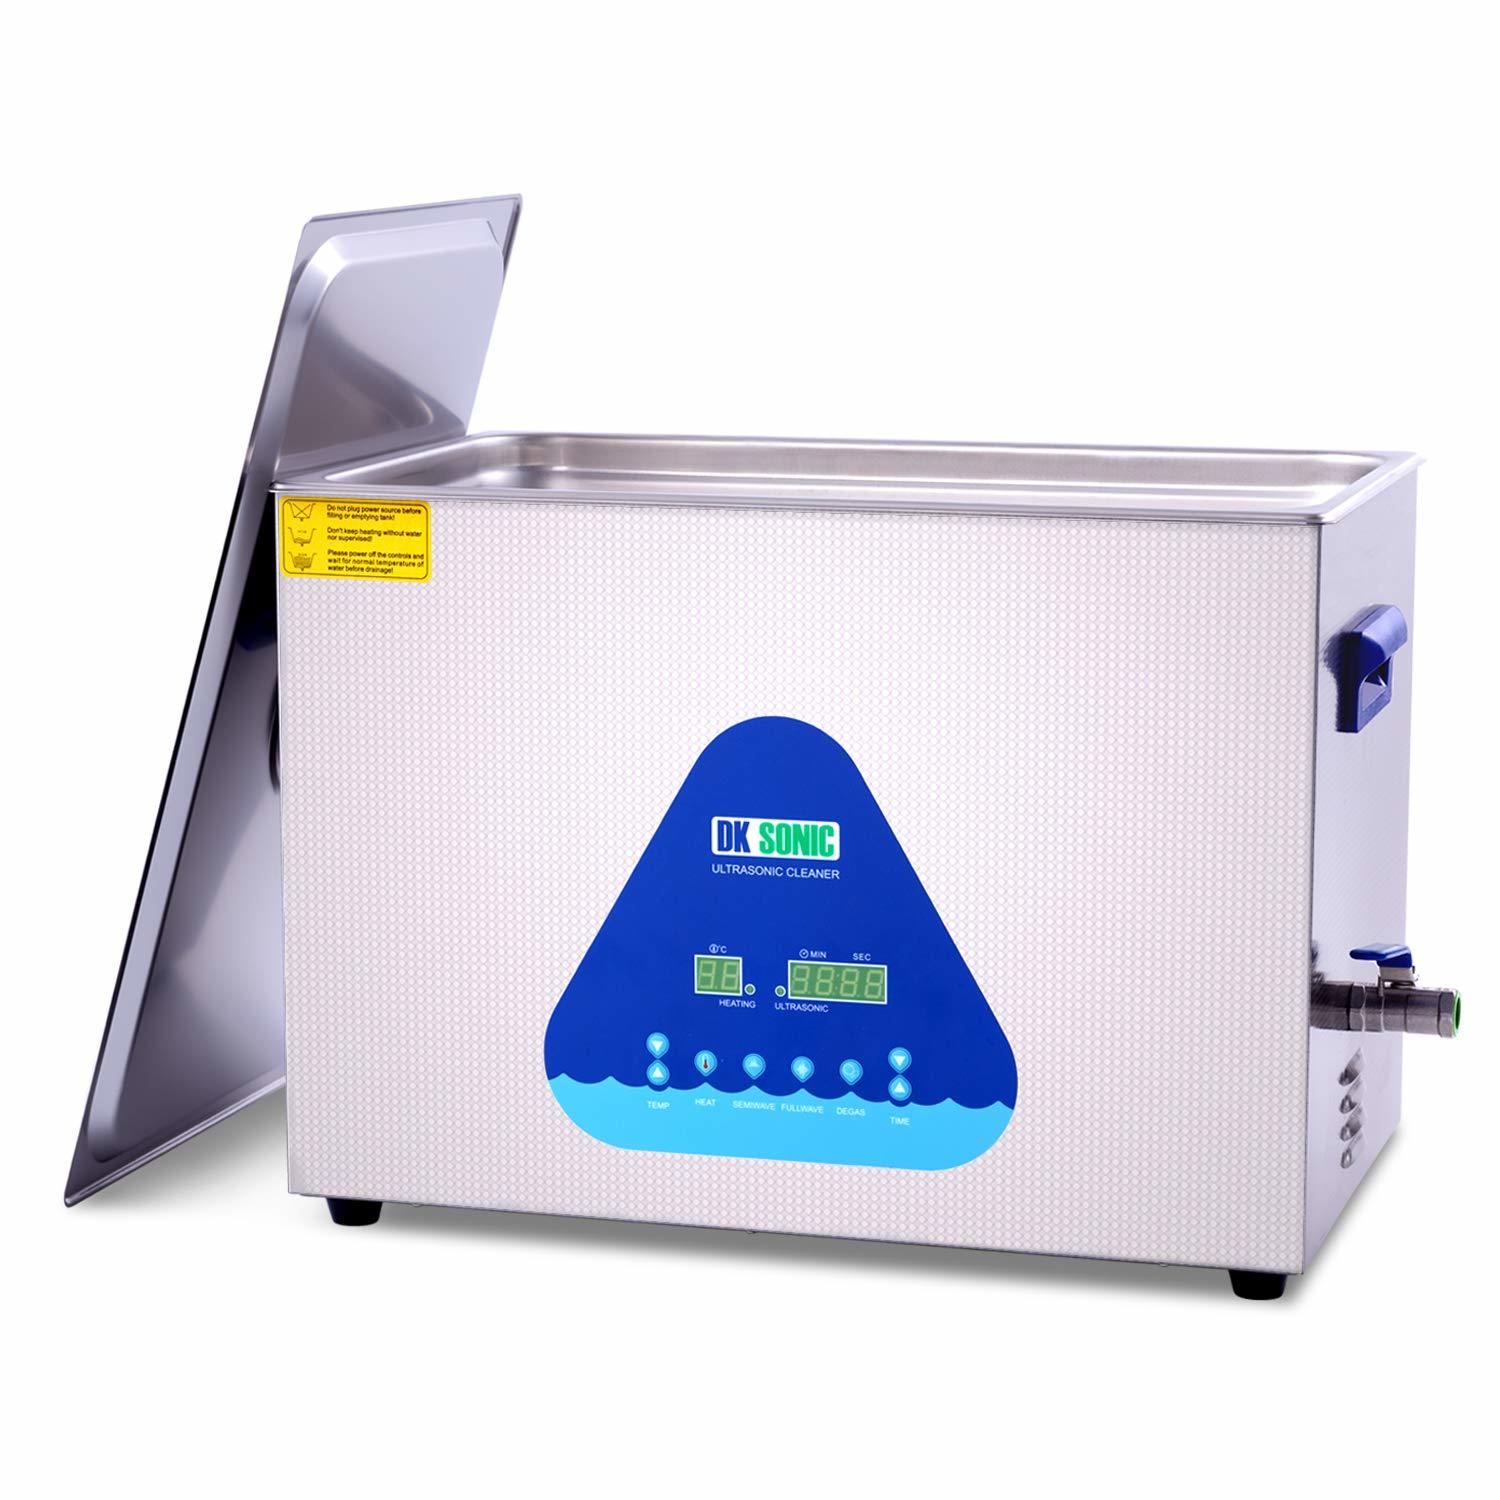 Large Professional Ultrasonic Carb Cleaner - DK SONIC 30L 600W